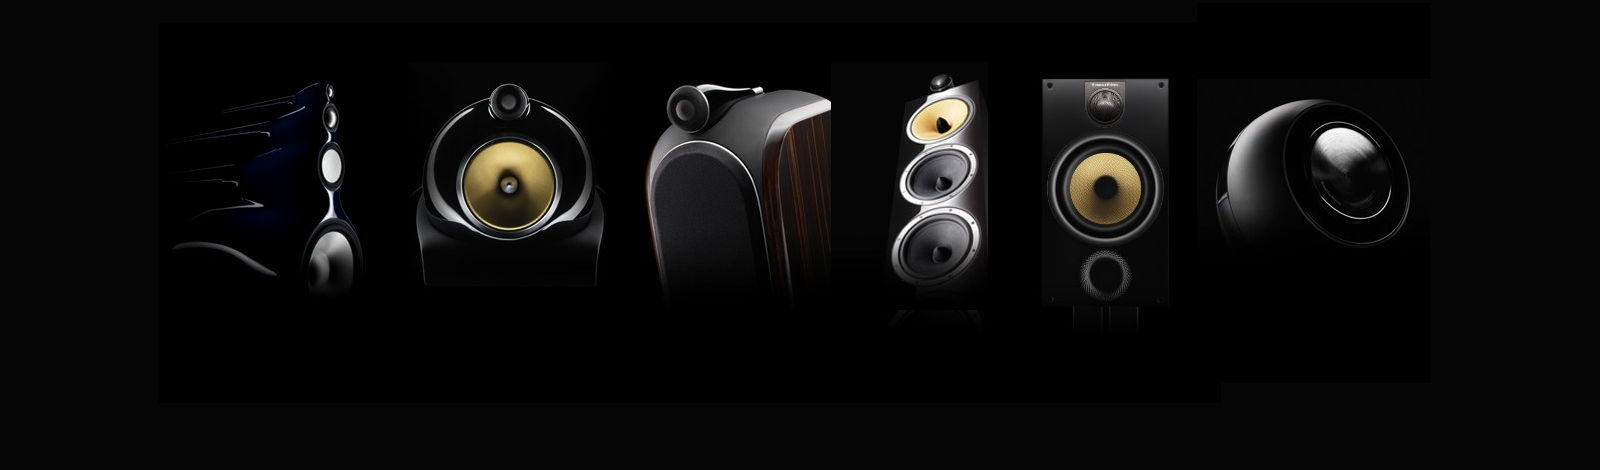 Bowers & Wilkins high end